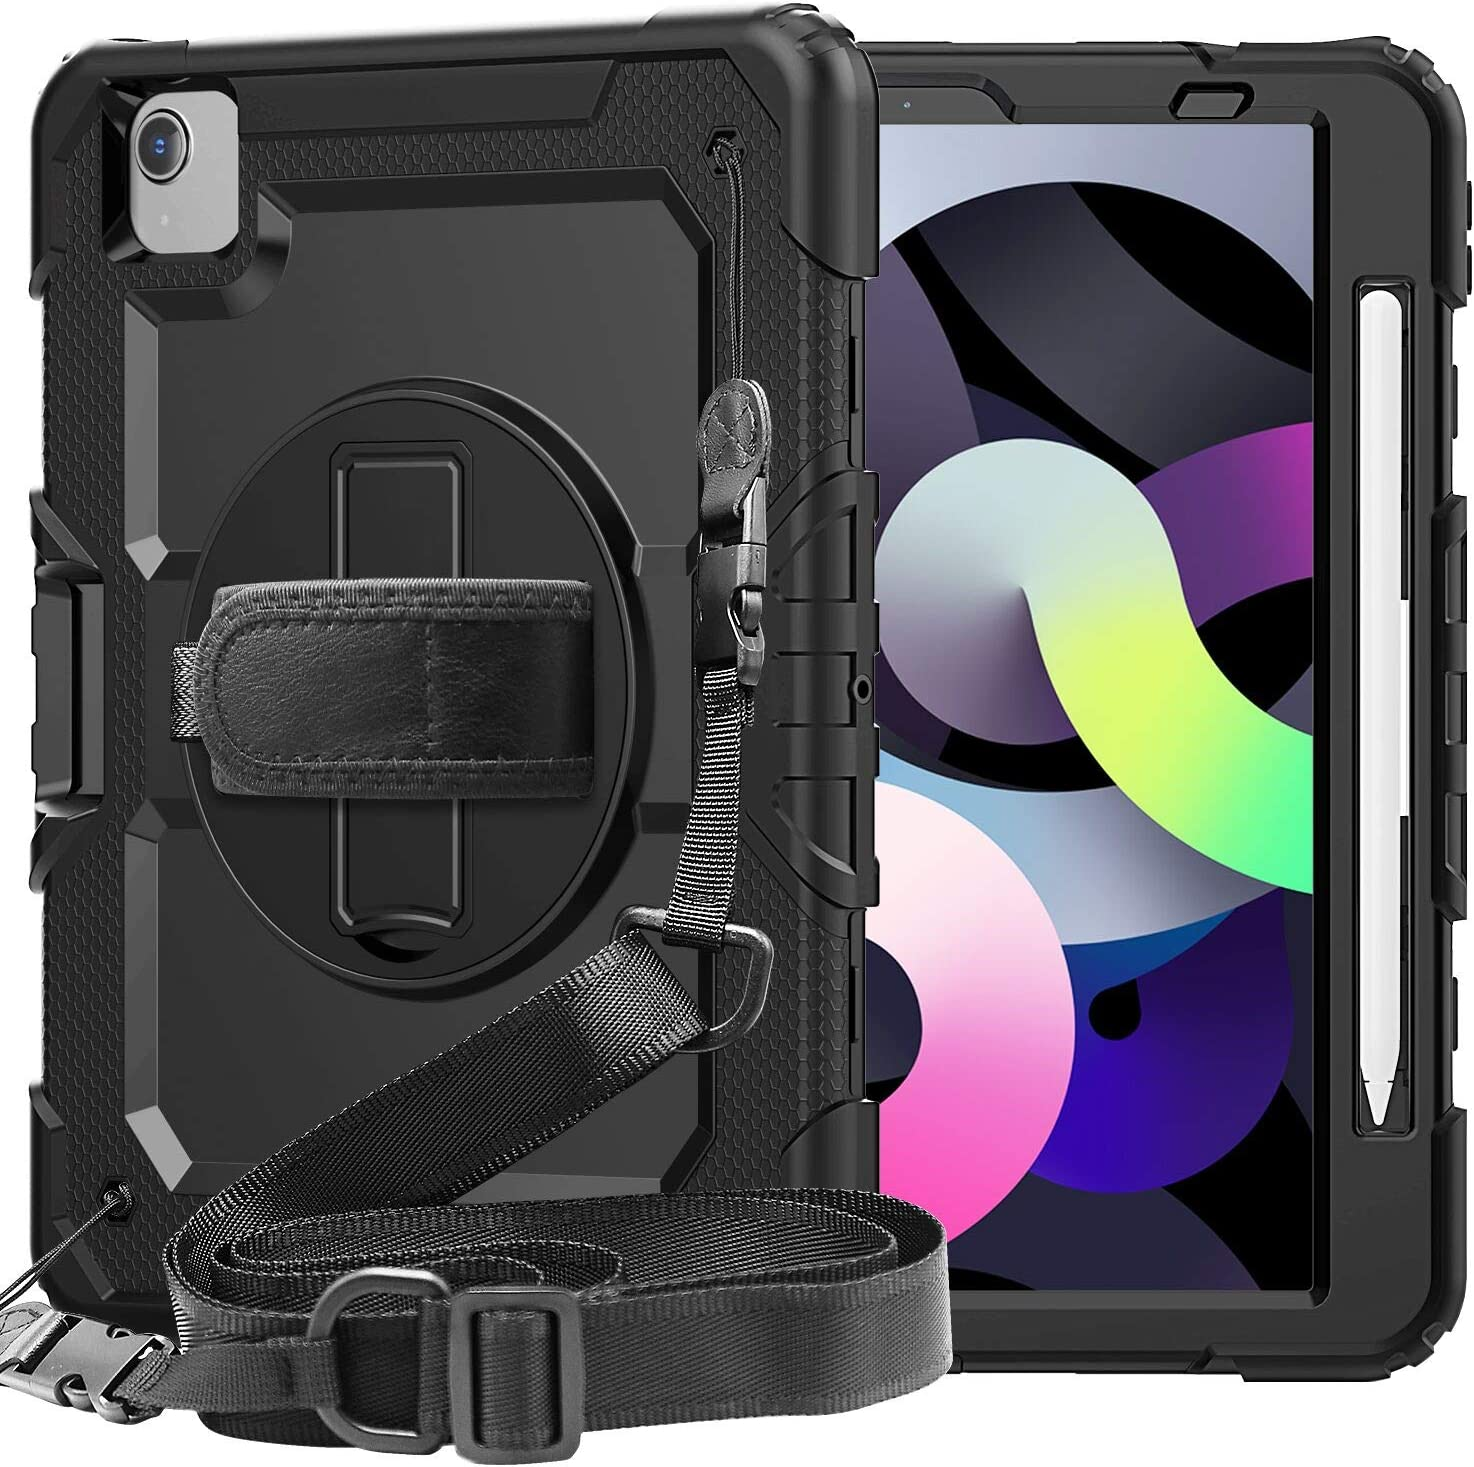 iPad Air 4 Case with Pencil Holder Screen Protector | SIBEITU iPad Air 10.9 Case 2020 Shockproof Heavy Duty | Hard Protective Cover w/ Stand Hand&Shoulder Strap for iPad Pro 11 | Black